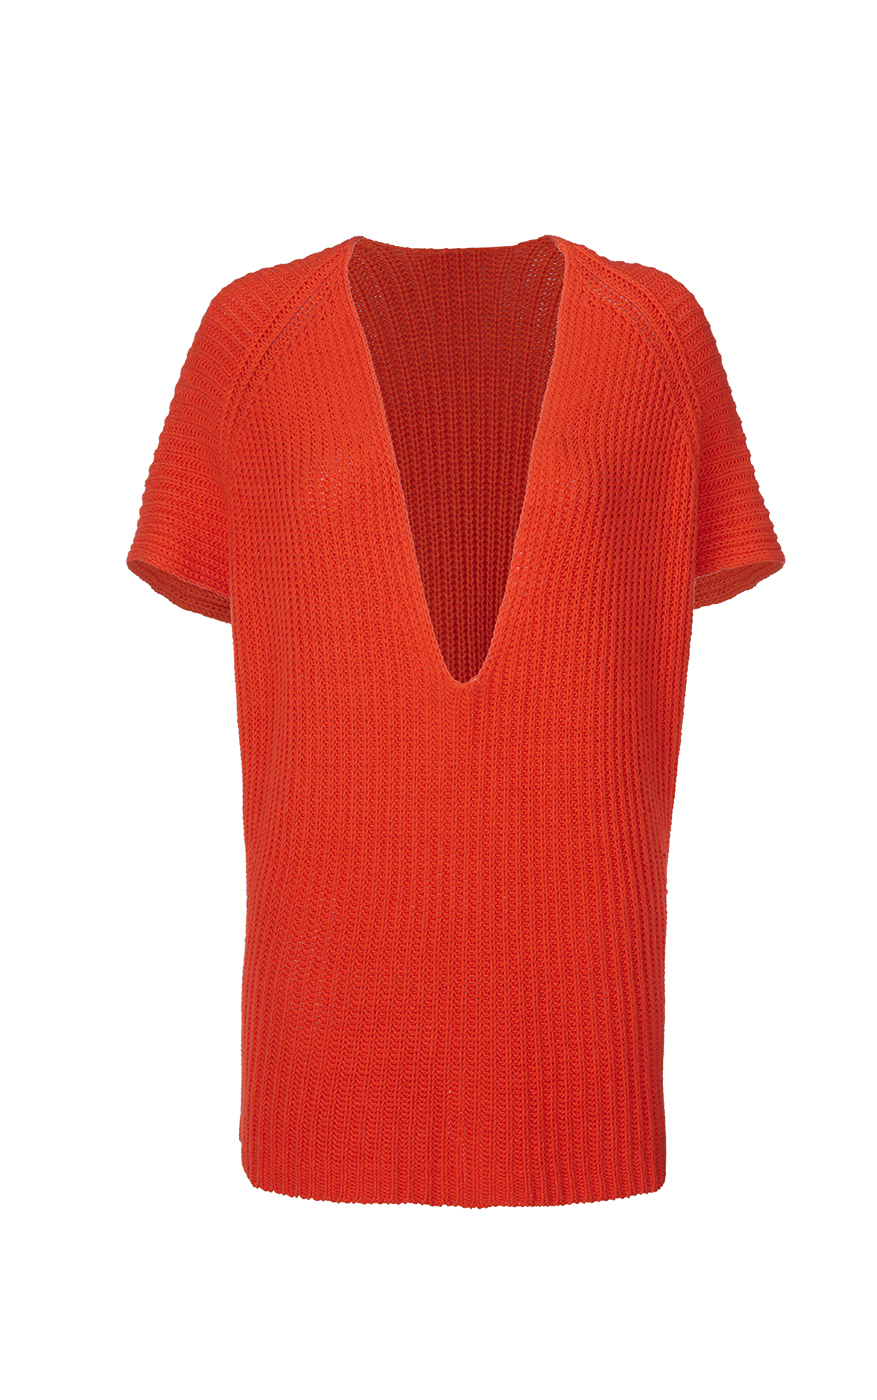 cabi's Ruby Pullover